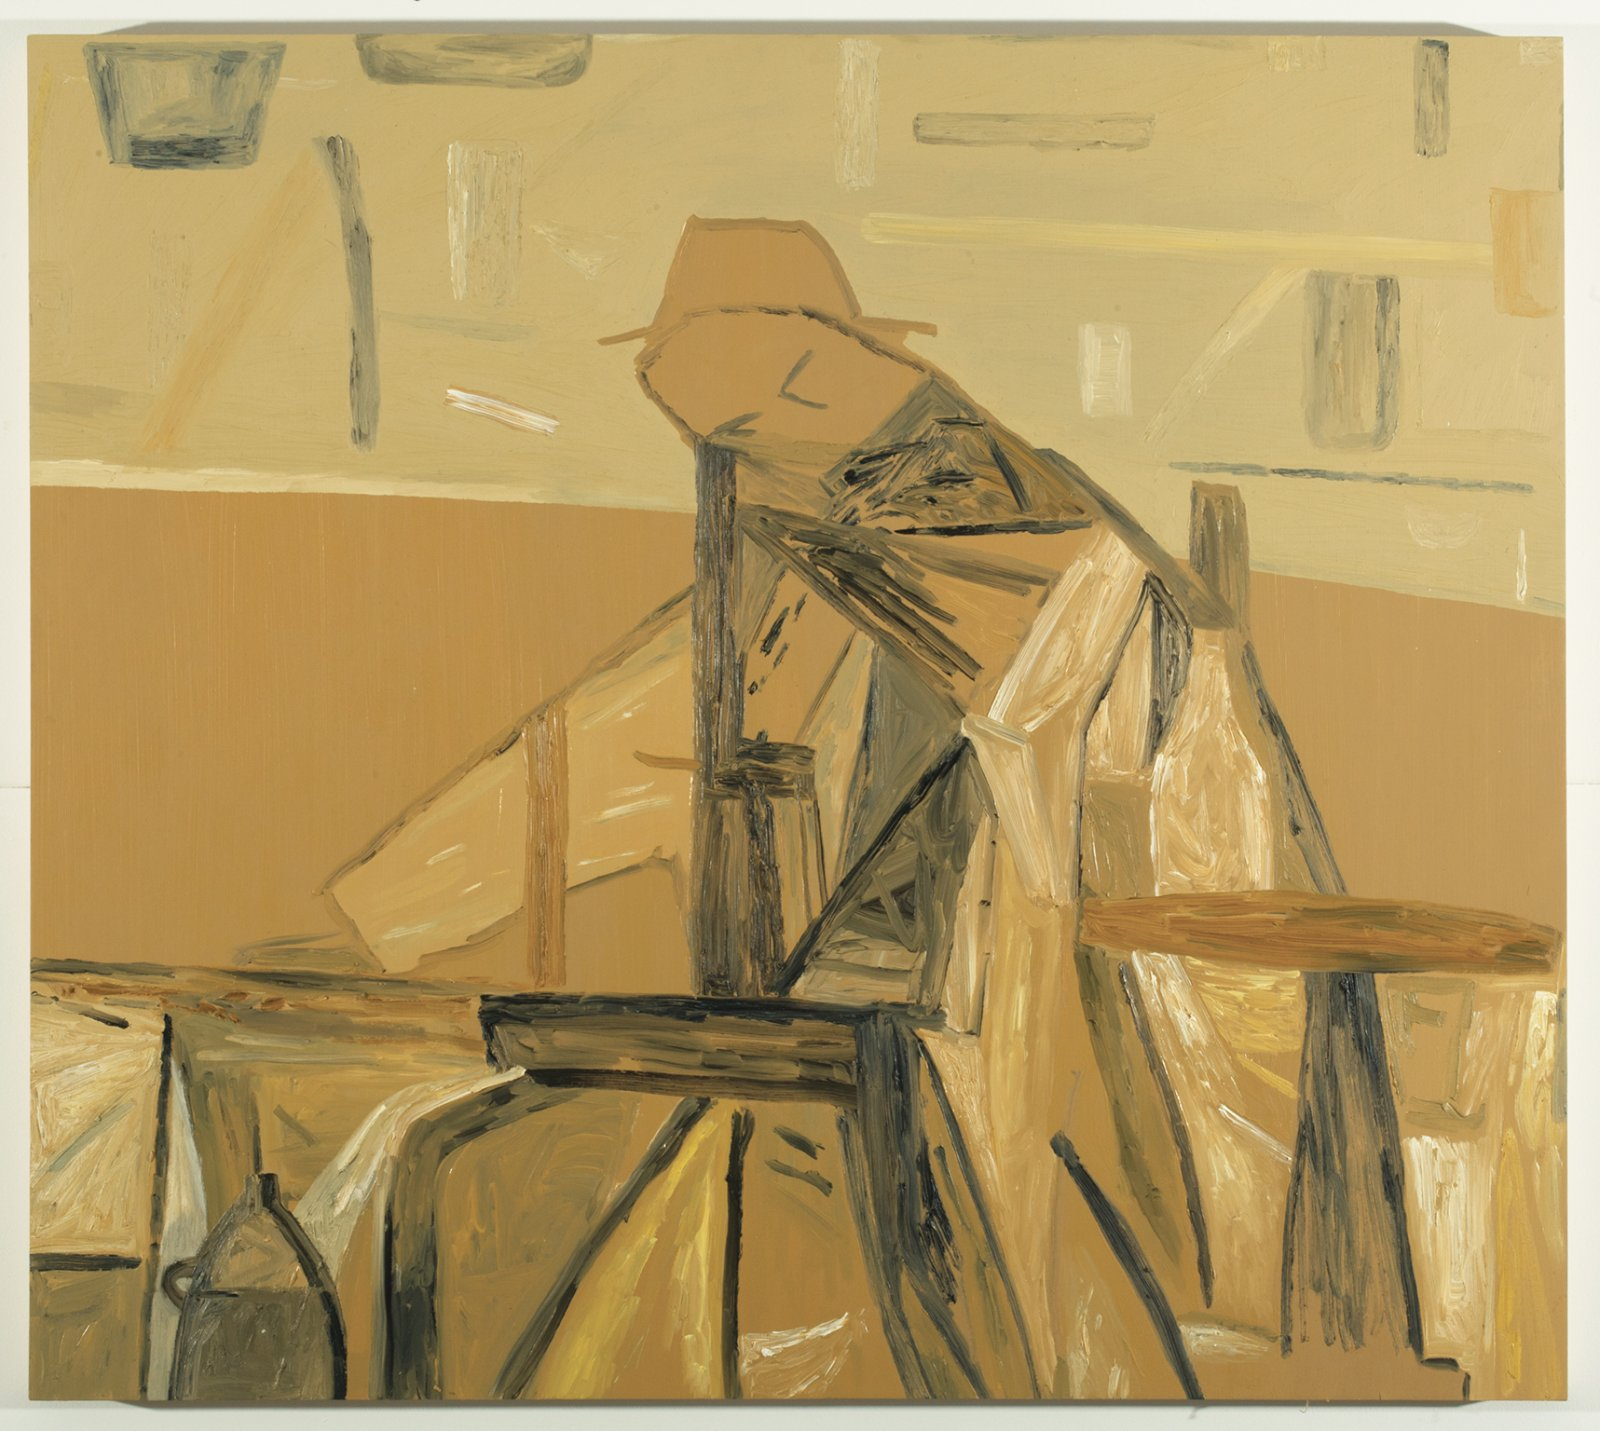 Rebecca Brewer, Beuys Painting, 2010, oil on panel, 42 x 47 in. (107 x 120 cm)